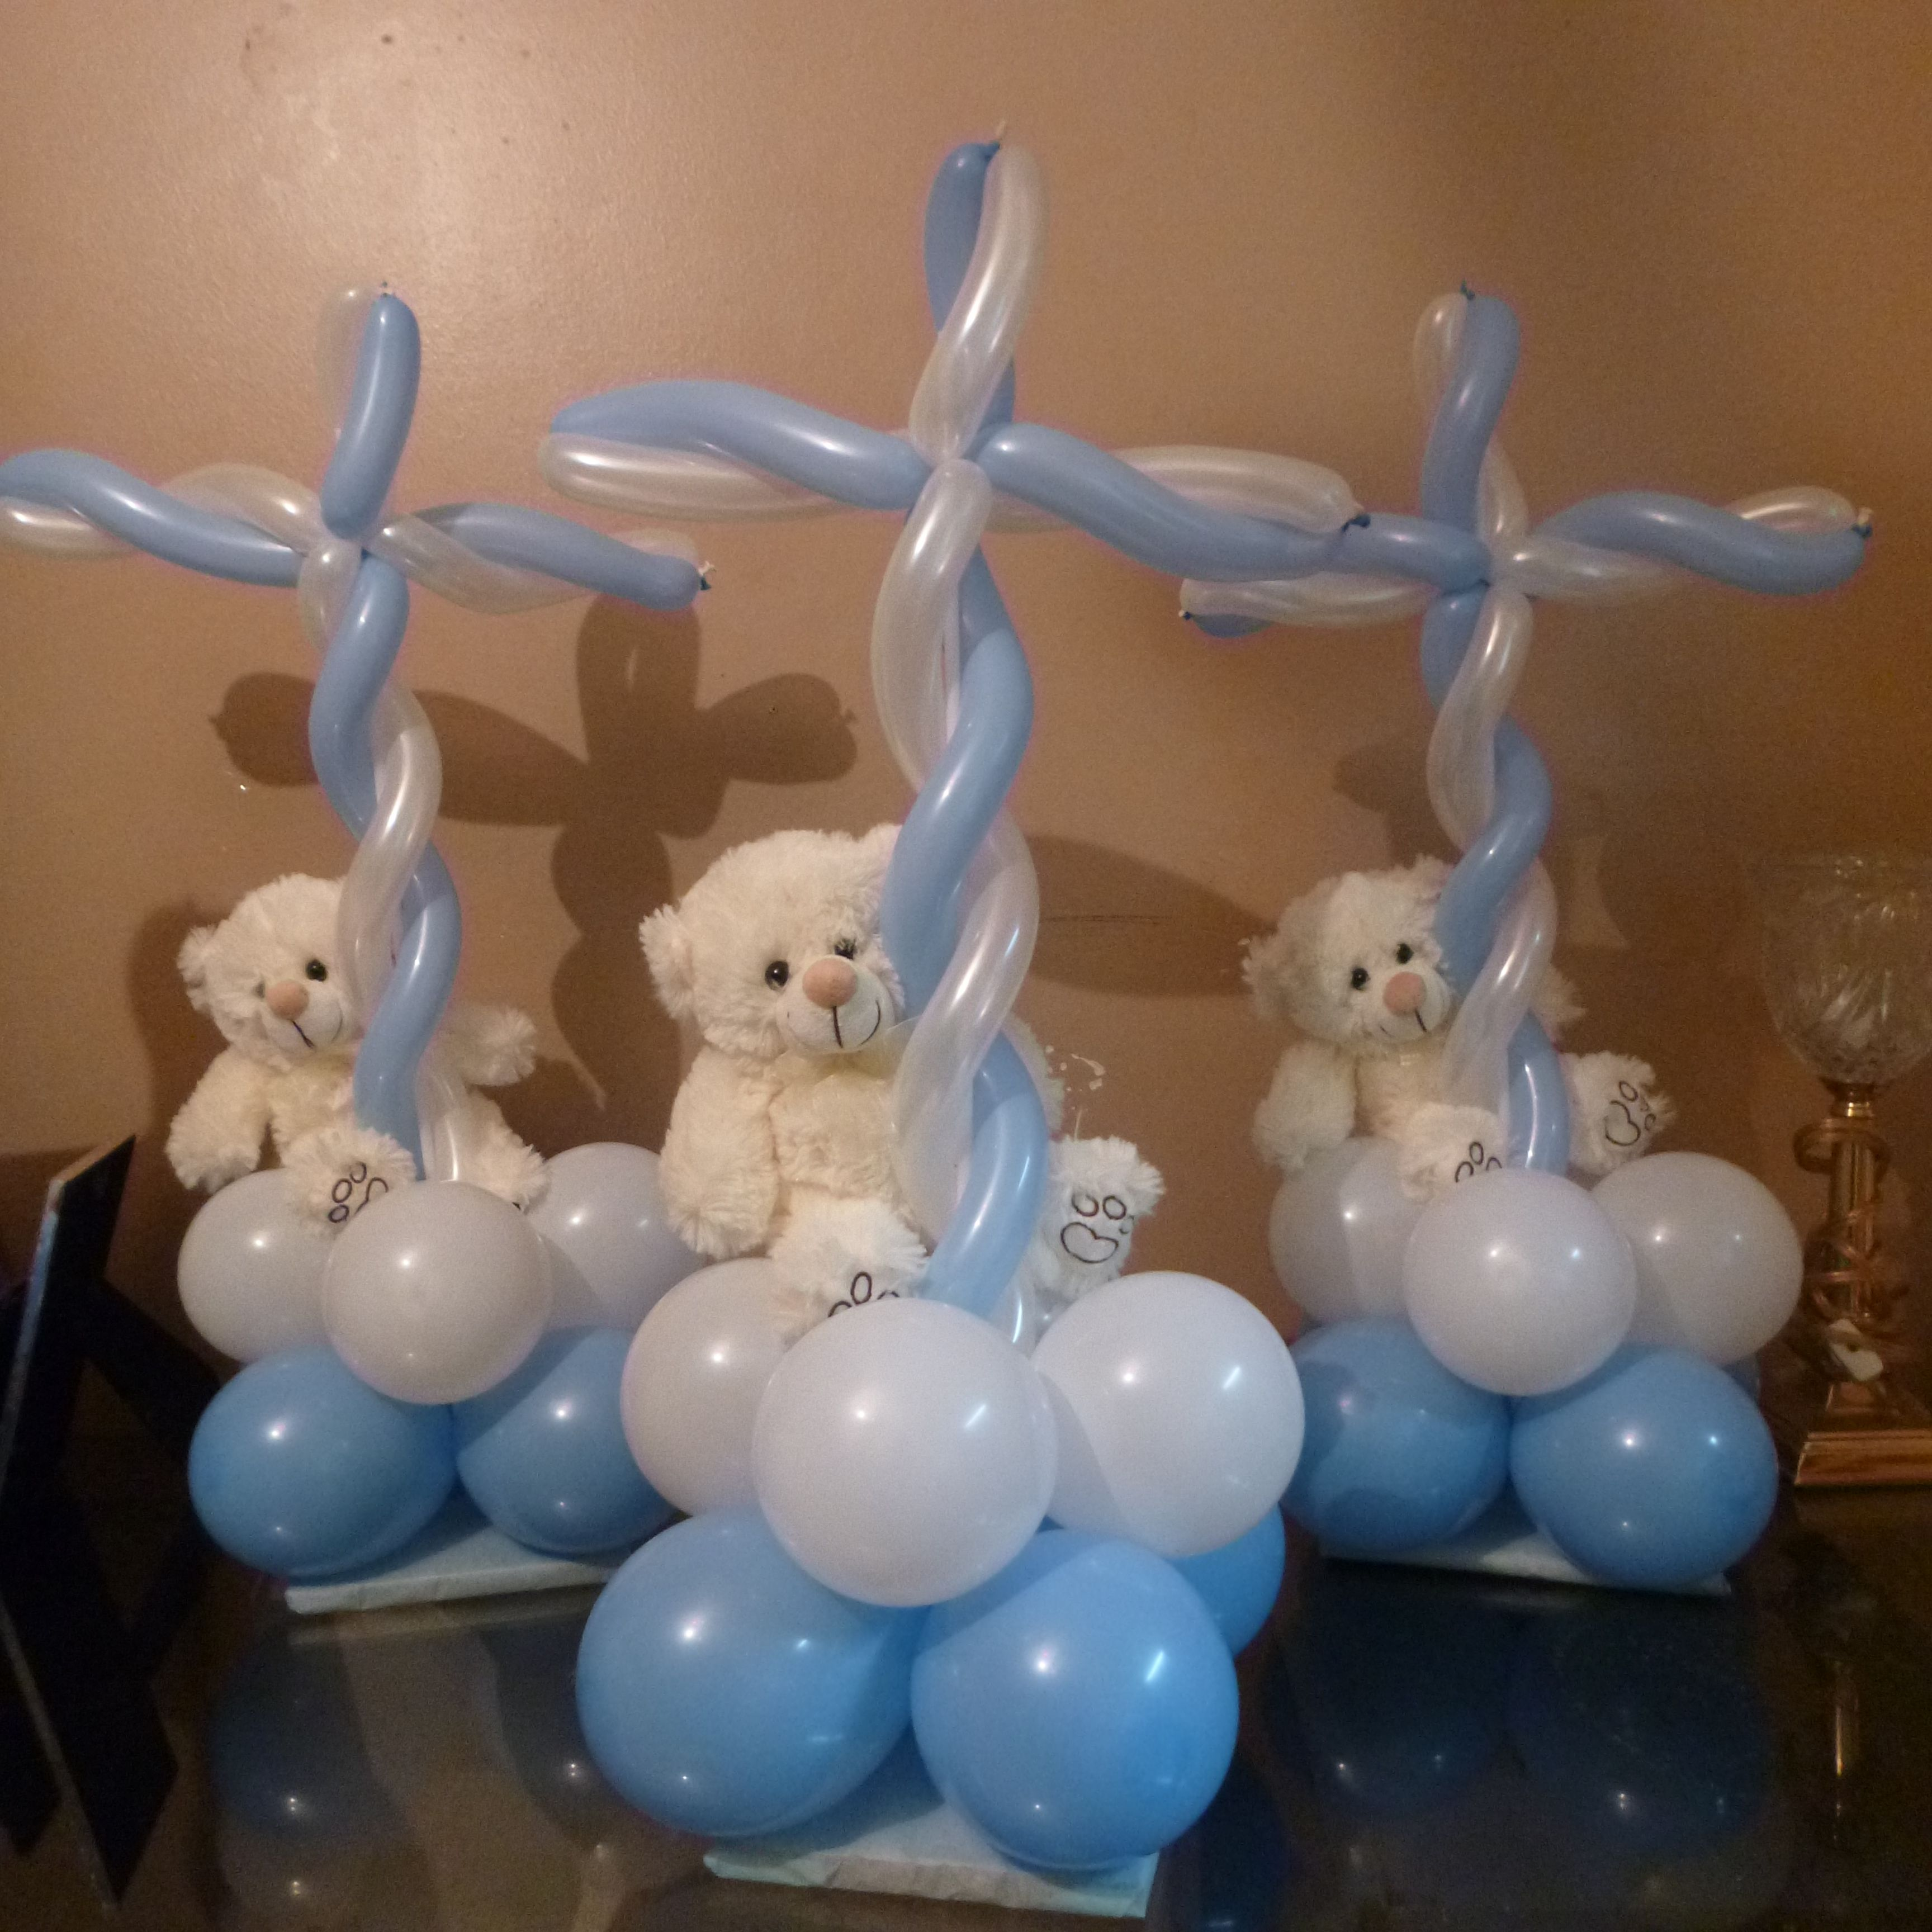 Religious boy baptism balloons balloon creations pinterest baptism ideas christening and - Baptism decorations ideas for boy ...